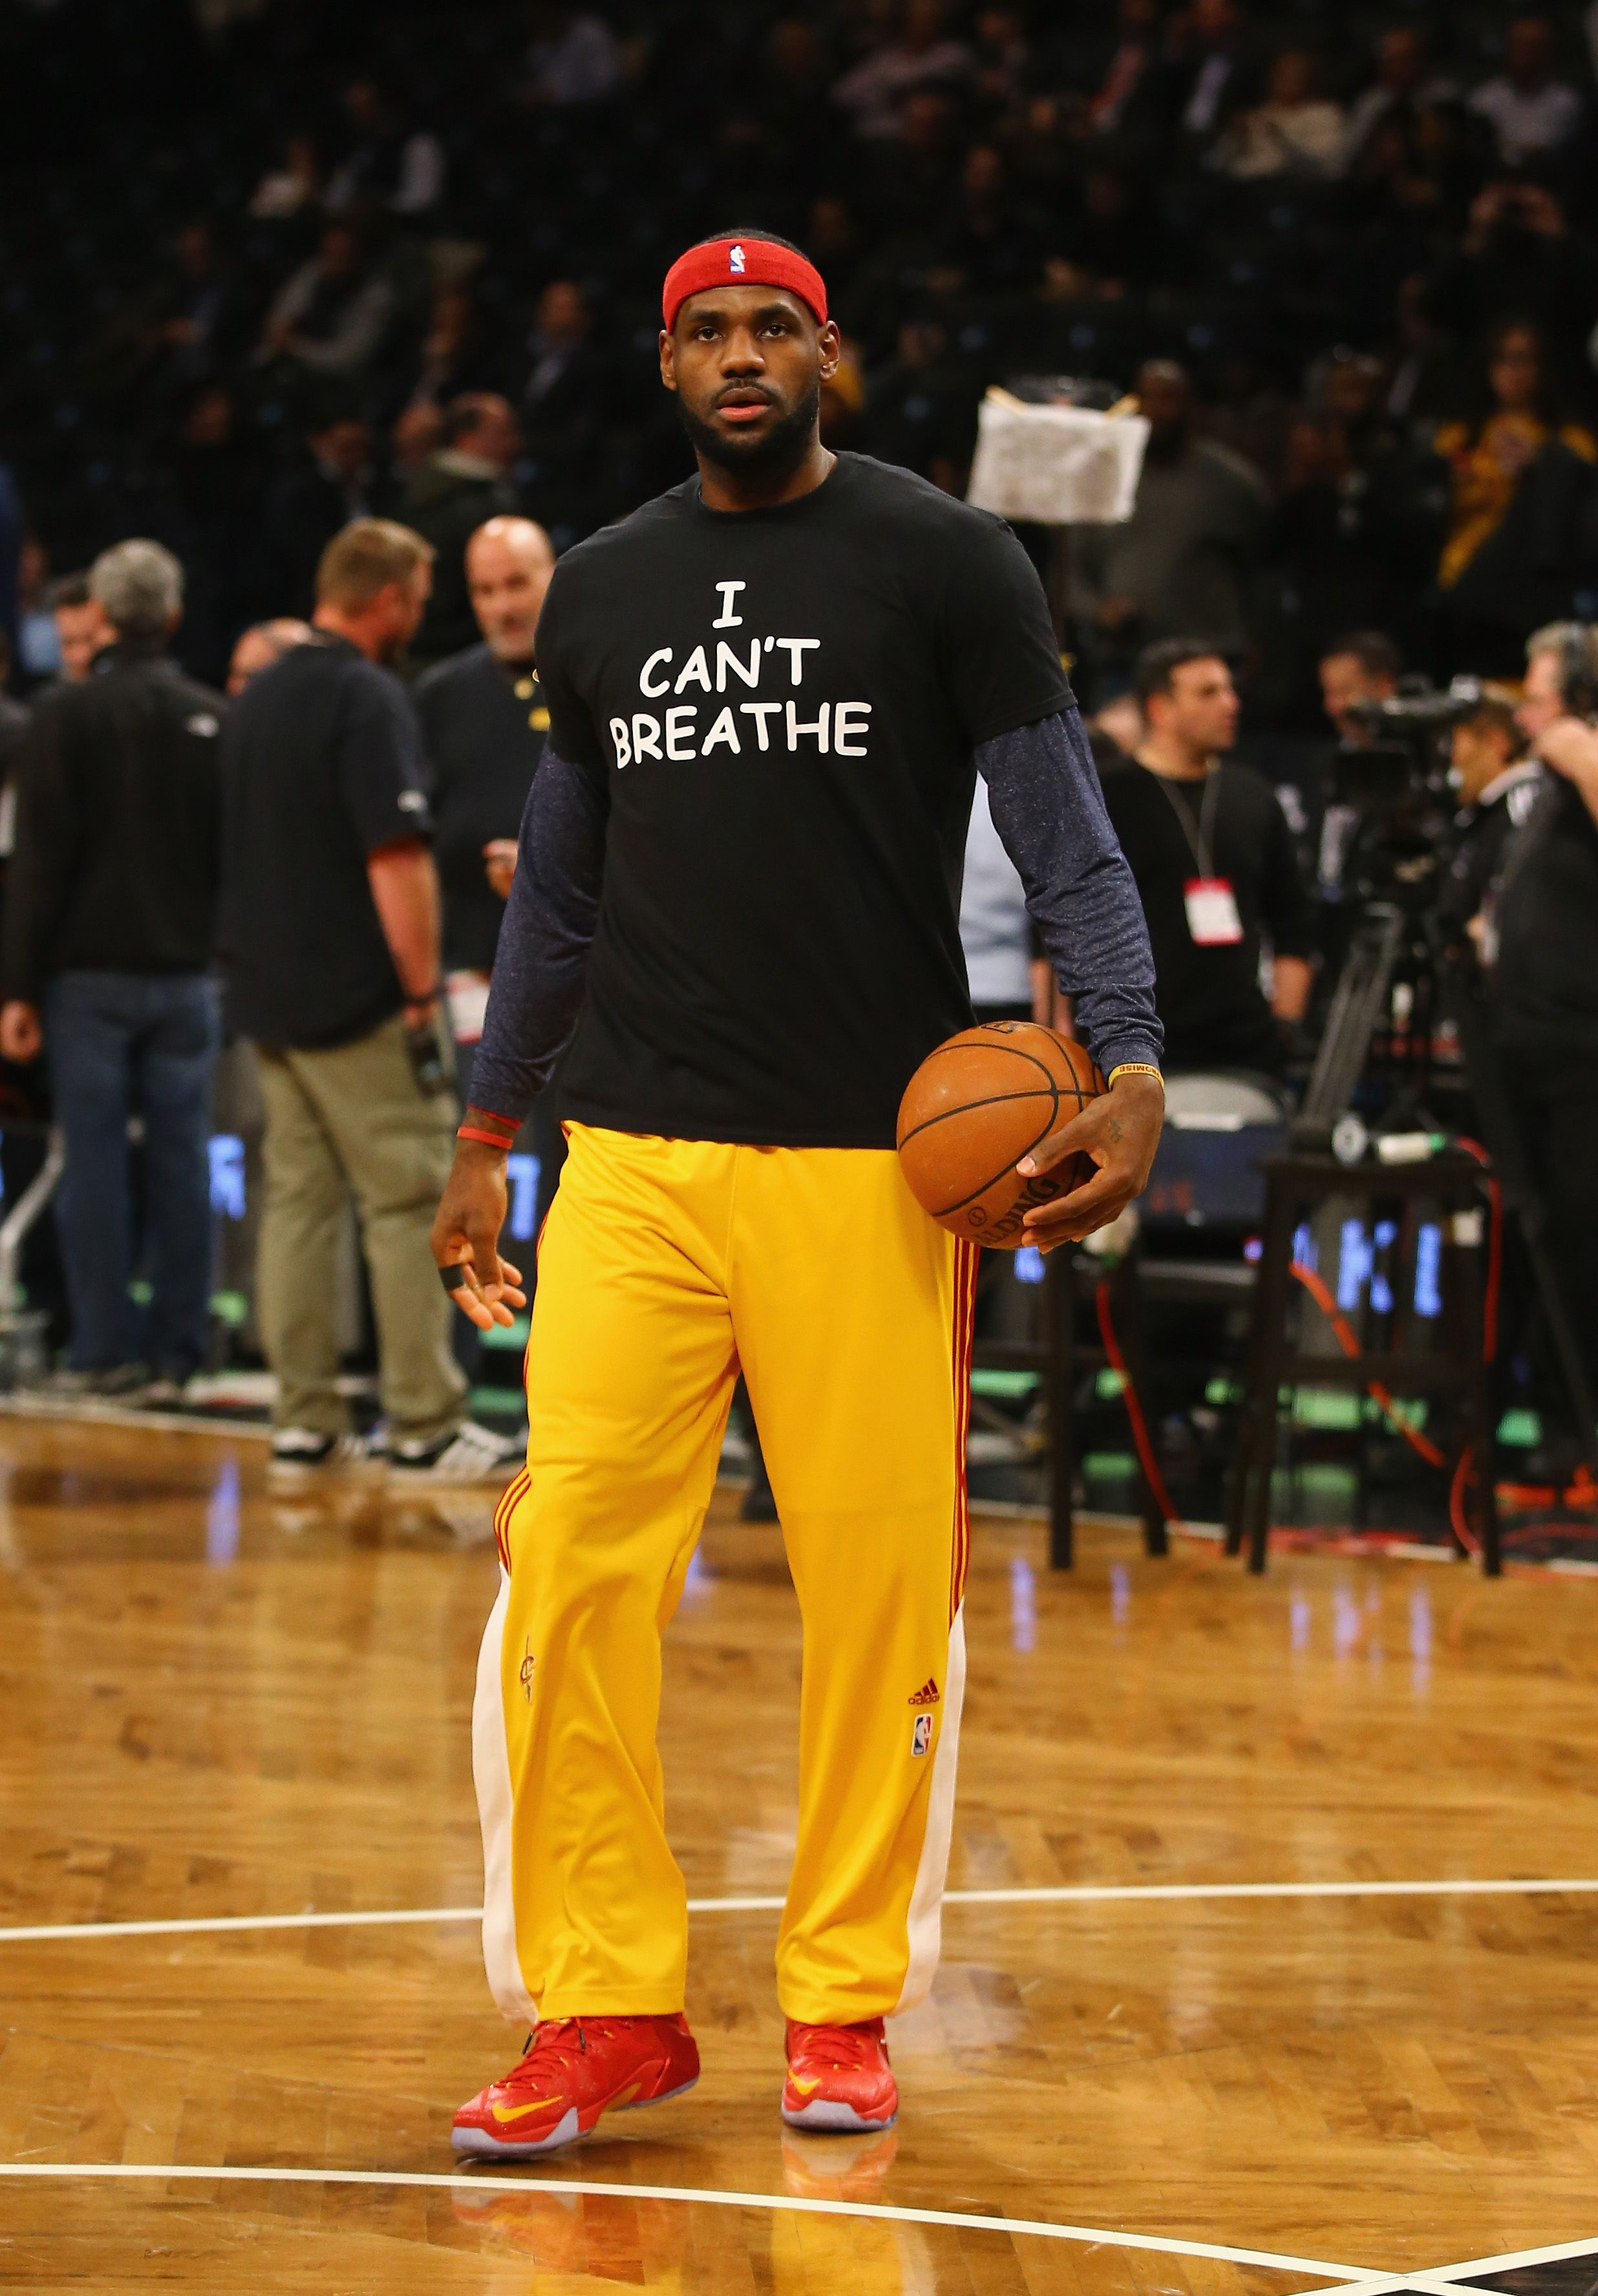 """LeBron James sports an """"I Can't Breathe"""" shirt during his game against the Brooklyn Nets at the Barclays Center on December 8, 2014 in New York City. 